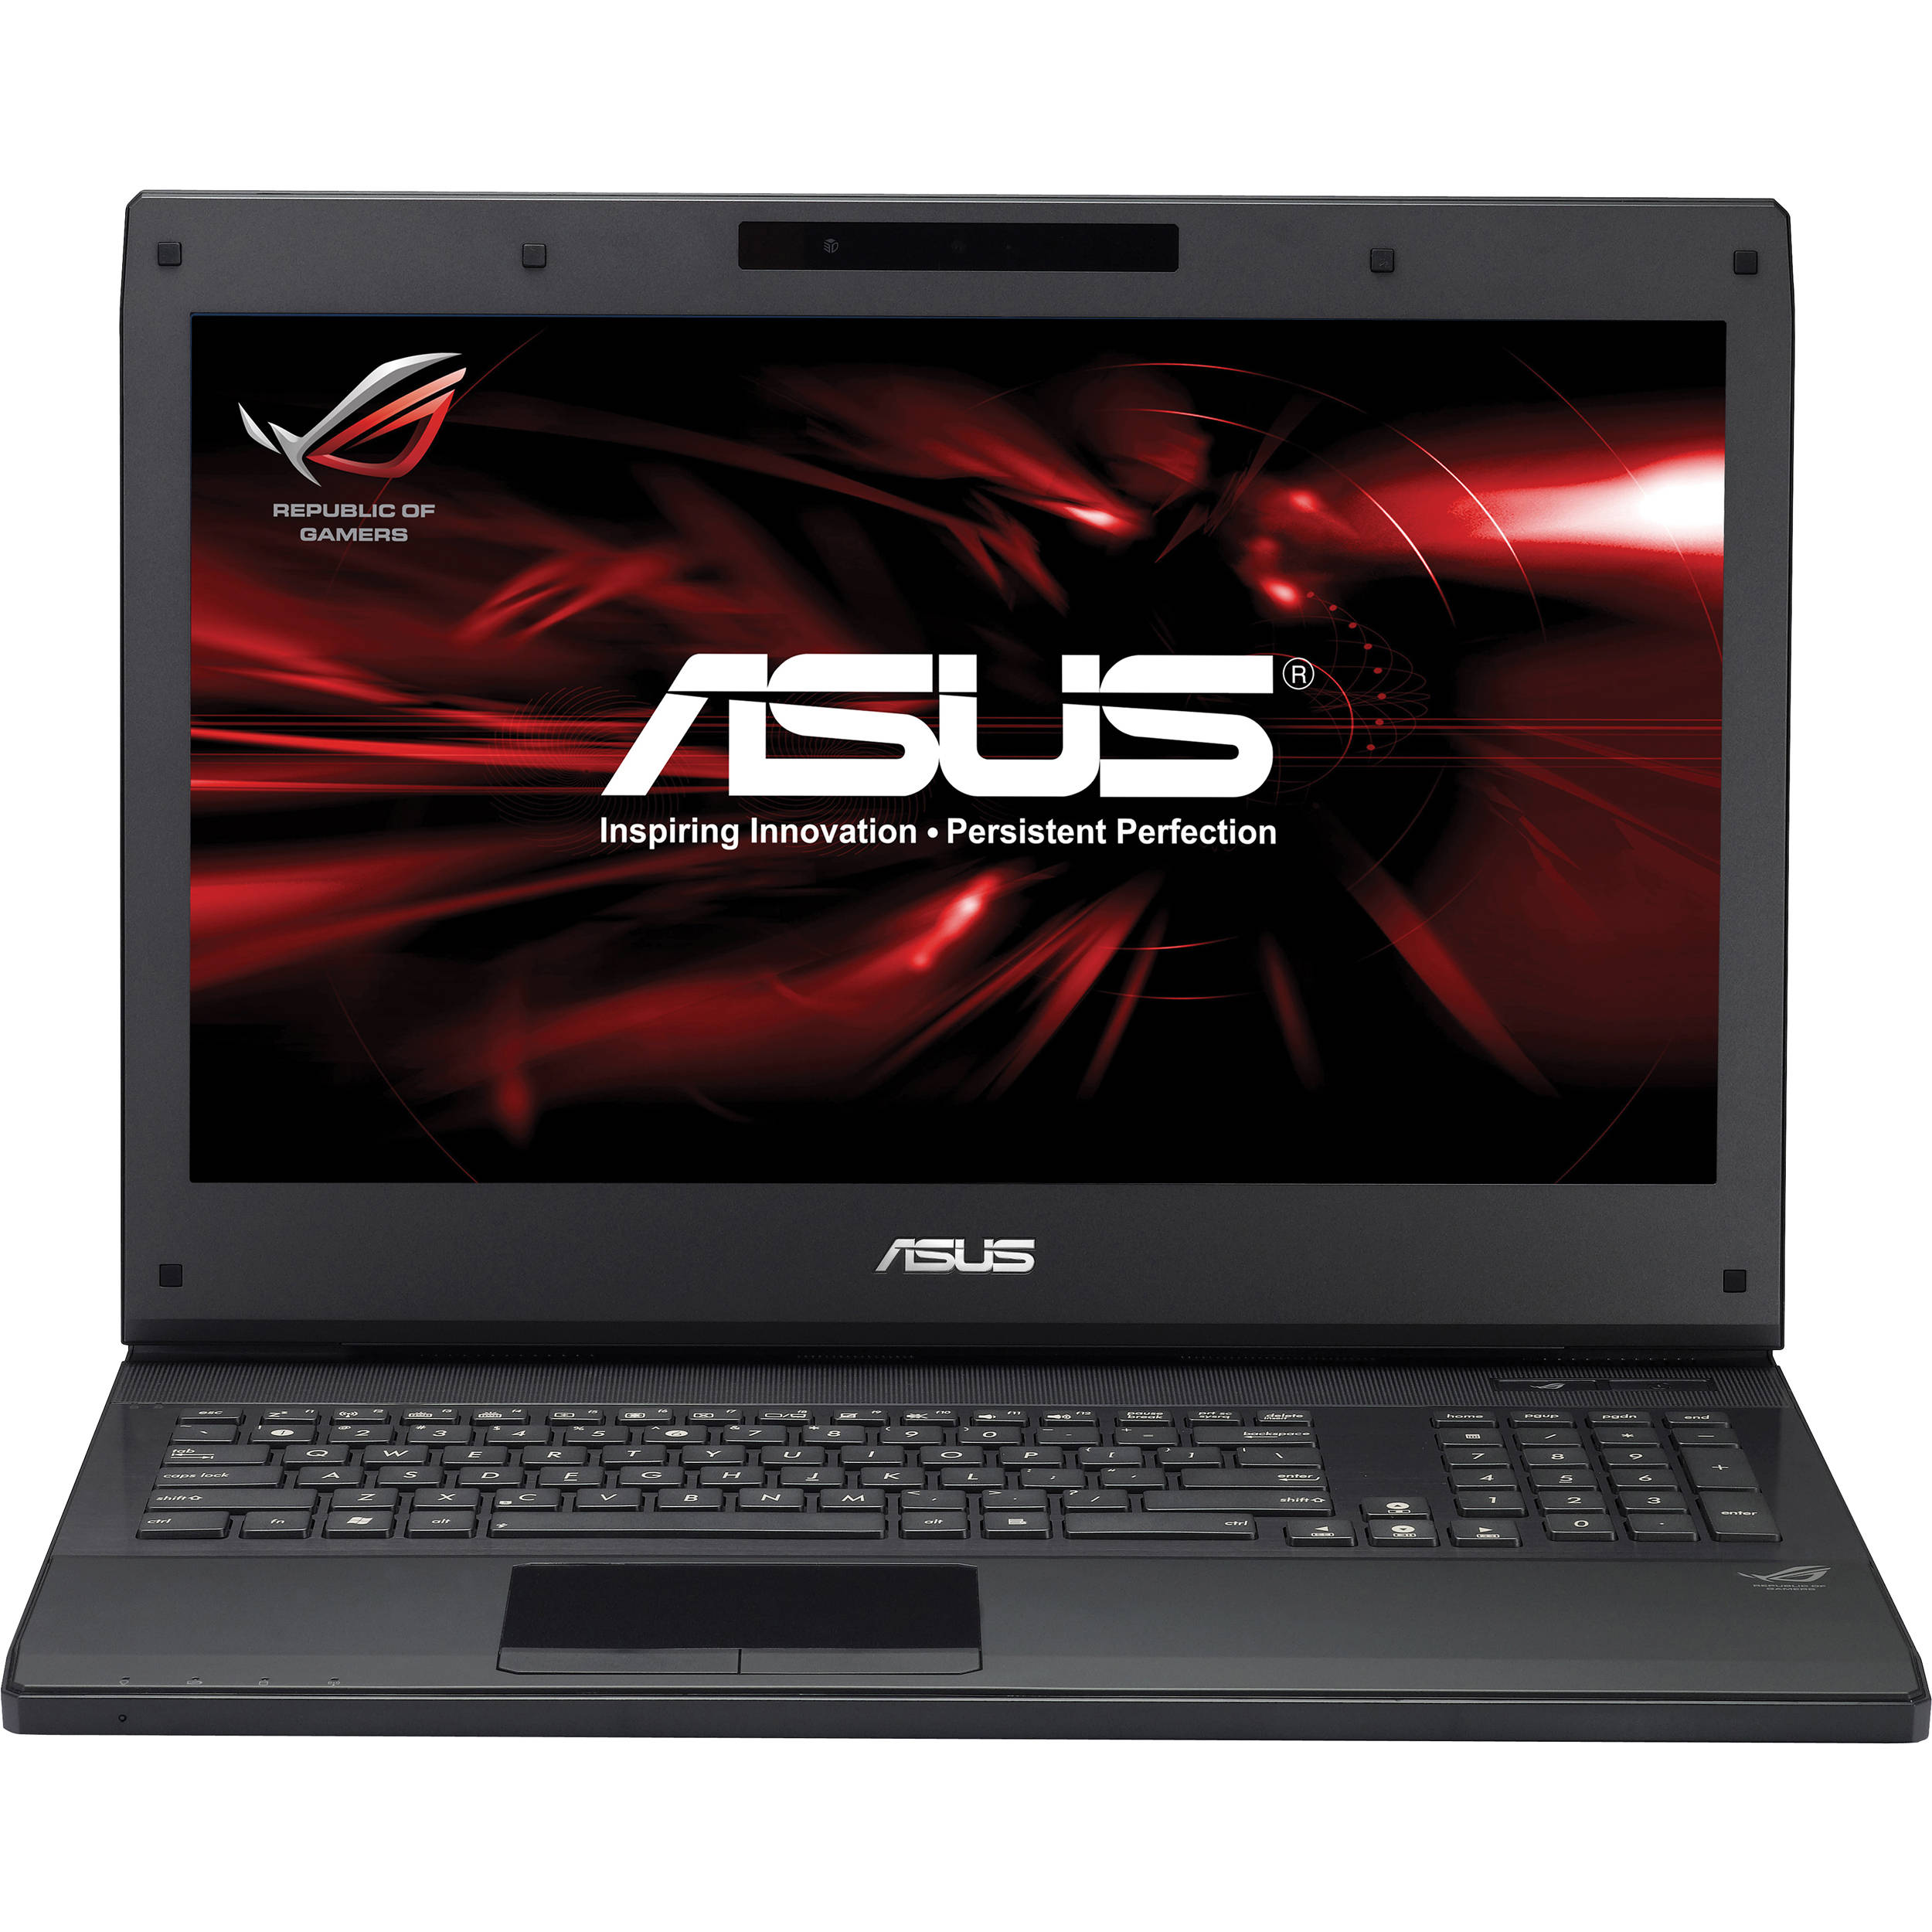 ASUS G74 MICROPHONE DOWNLOAD DRIVERS